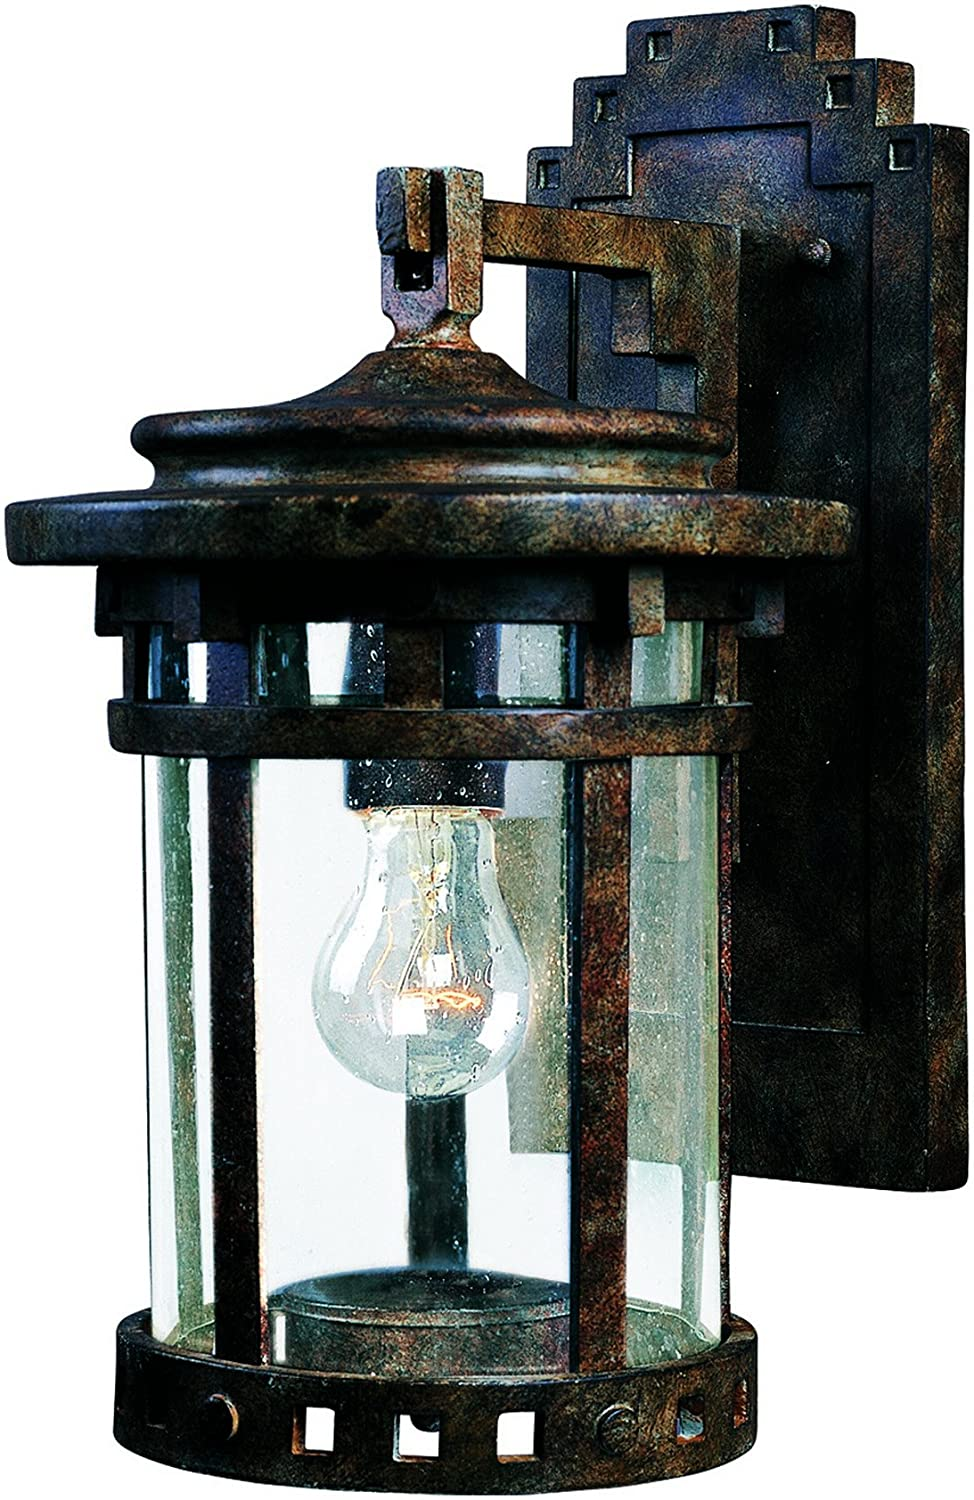 Maxim 3133CDSE Santa Barbara Cast 1-Light Outdoor Wall Lantern, Sienna Finish, Seedy Glass, MB Incandescent Incandescent Bulb , 50W Max., Dry Safety Rating, 2900K color Temp, Standard Dimmable, Glass Shade Material, 15300 Rated Lumens